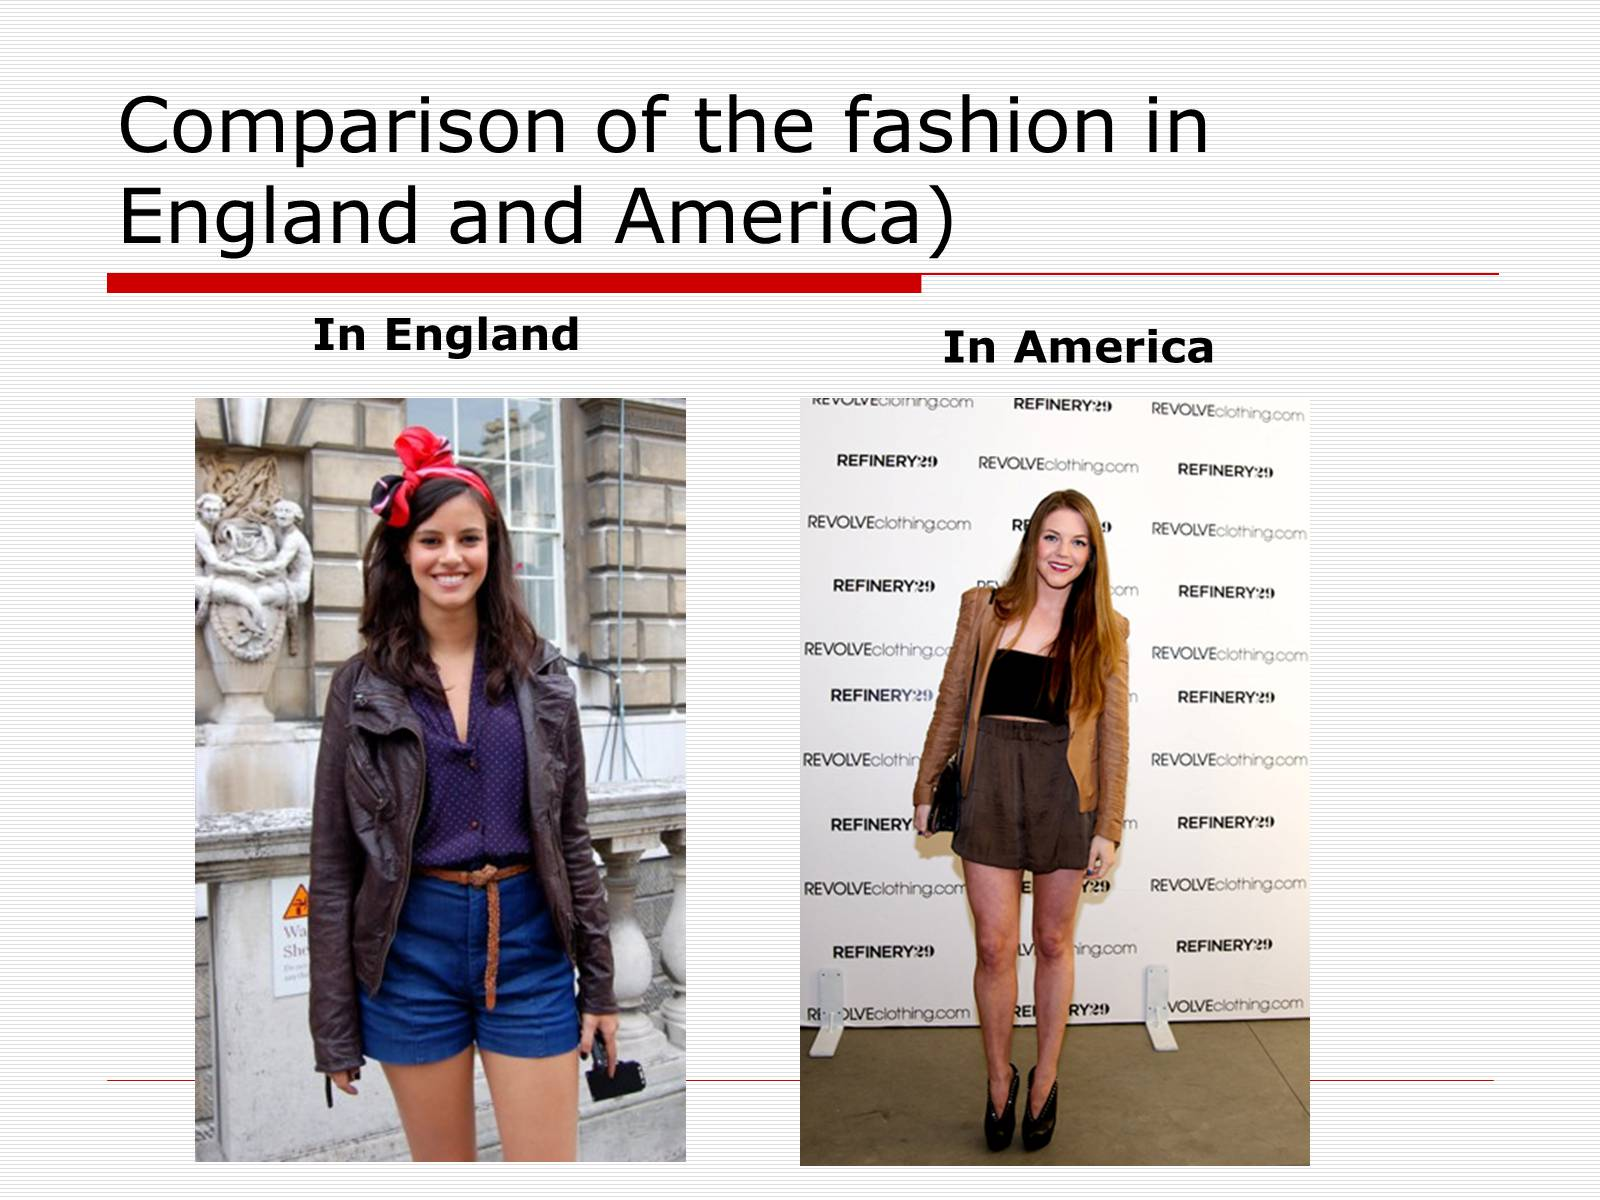 Презентація на тему «Comparison of the fashion in England and America» - Слайд #7